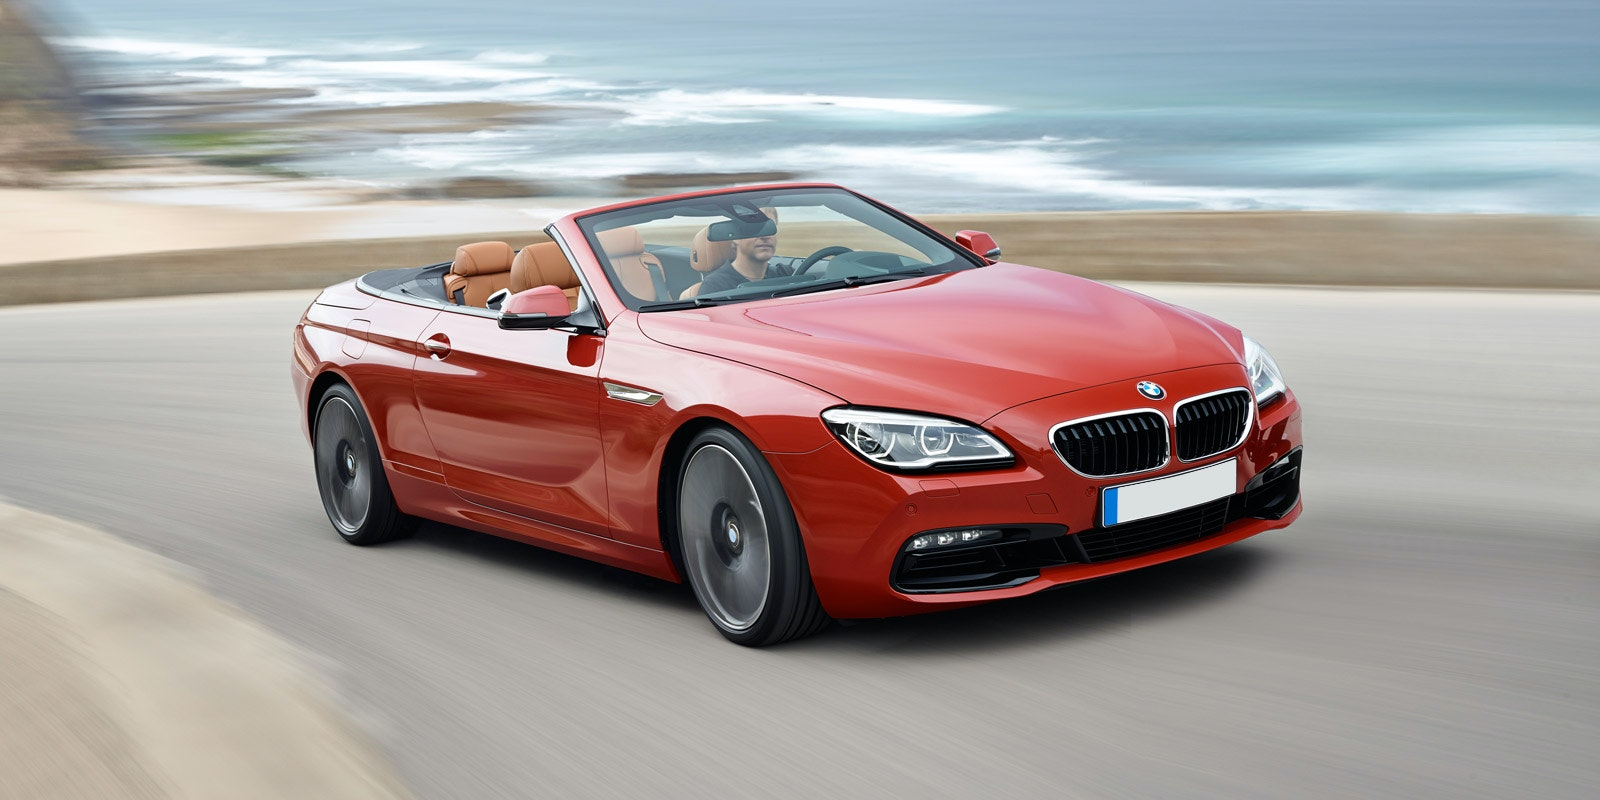 Bmw 6 series convertible red front driving.jpg?ixlib=rb 1.1